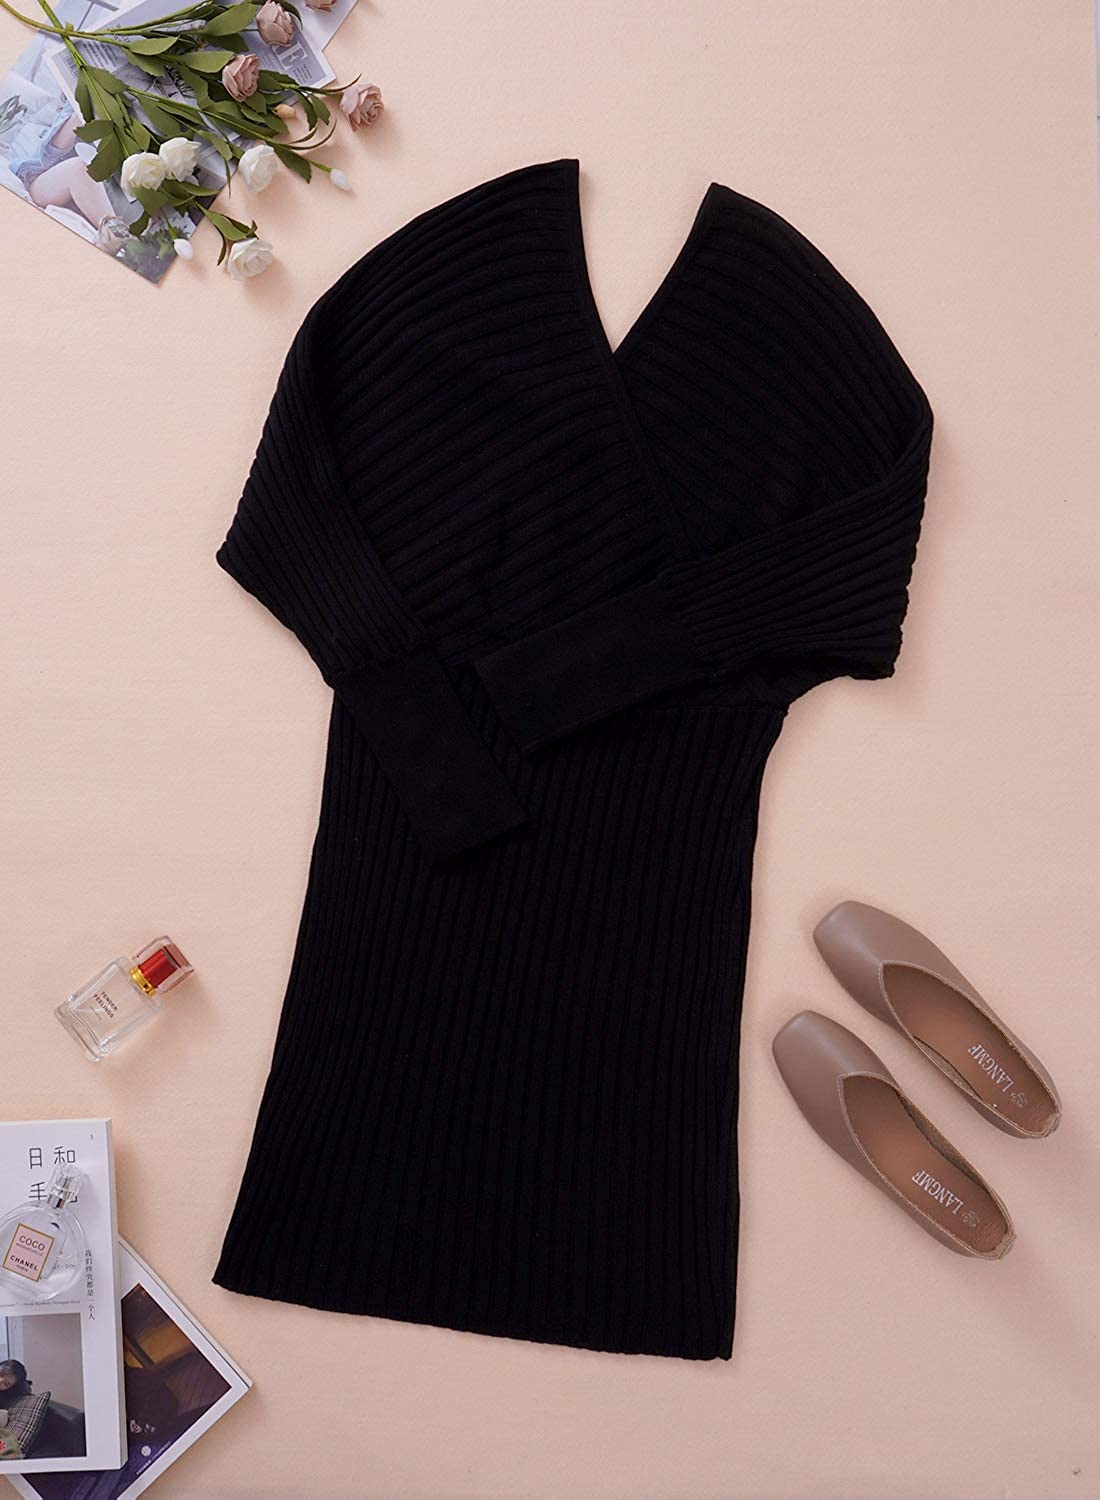 Asvivid Women's Fashion Winter Stylish Sweater Dress Solid Color Wrap V Neck Batwing Sleeves Ribbed Sweater Dress Black